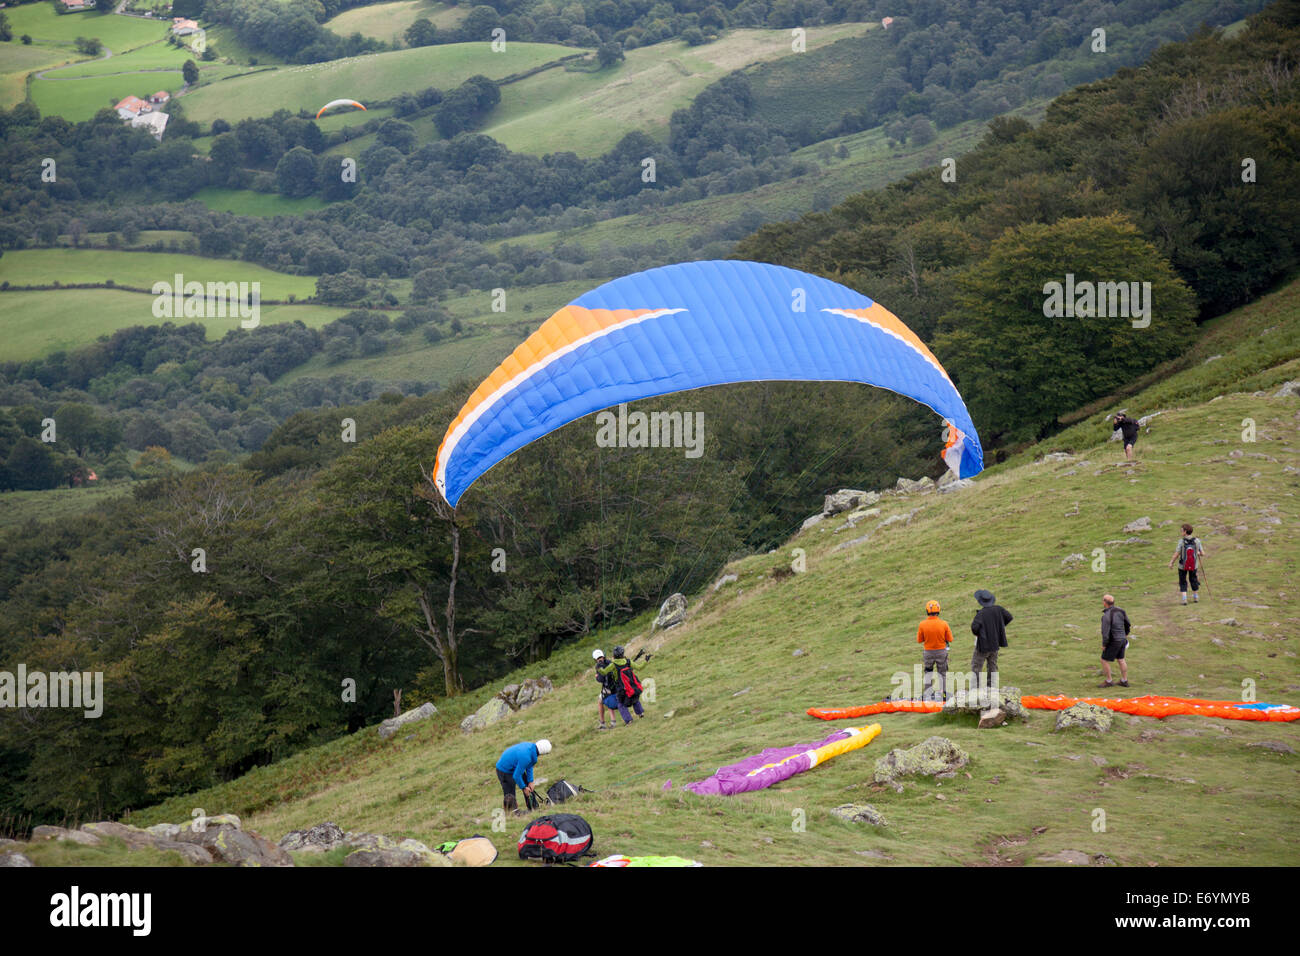 At the Baïgoura summit (2,942 feet), paragliders ready for their takeoff (French Basque country - Aquitaine - France). Stock Photo